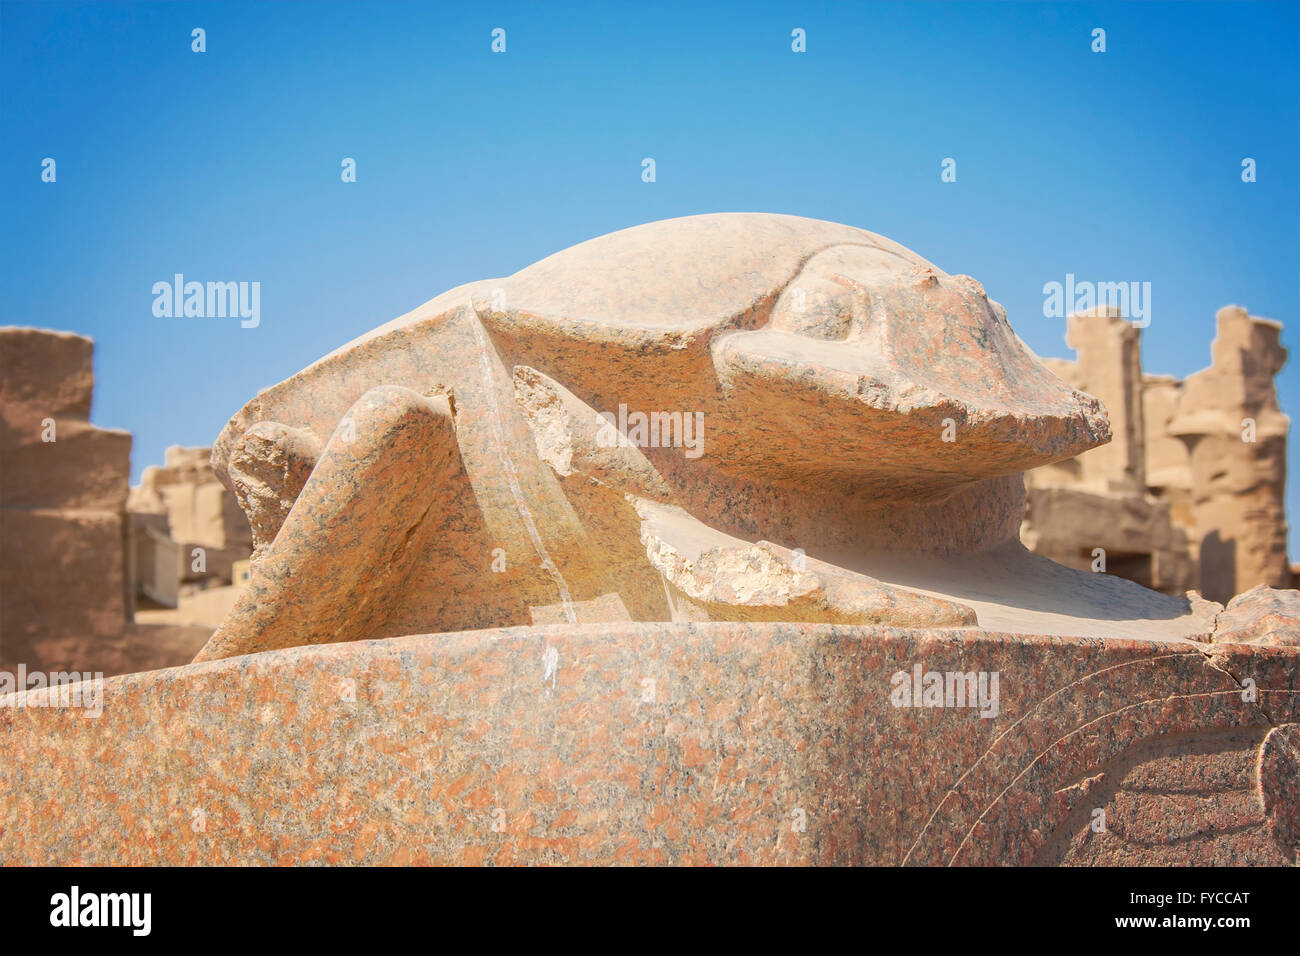 Image of a scarab statue at temple of Karnak in Luxor, Egypt. - Stock Image